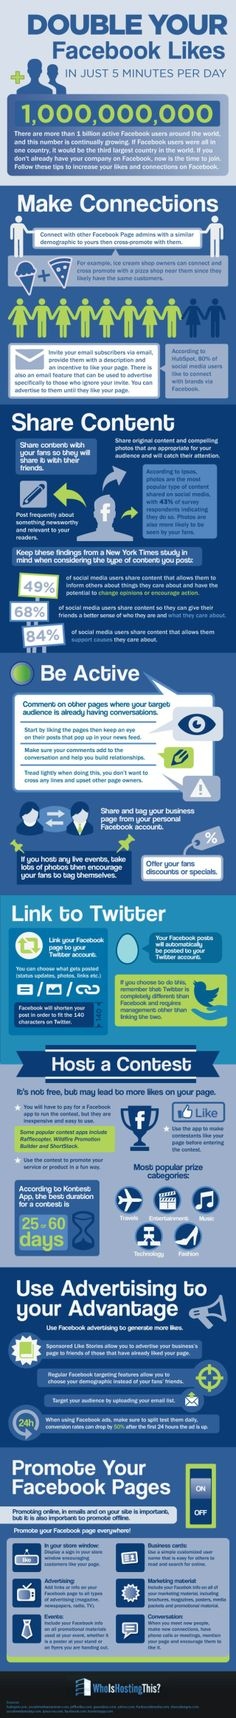 Double your FaceBook likes in just 5 minutes per day #infografia #infographic #socialmedia